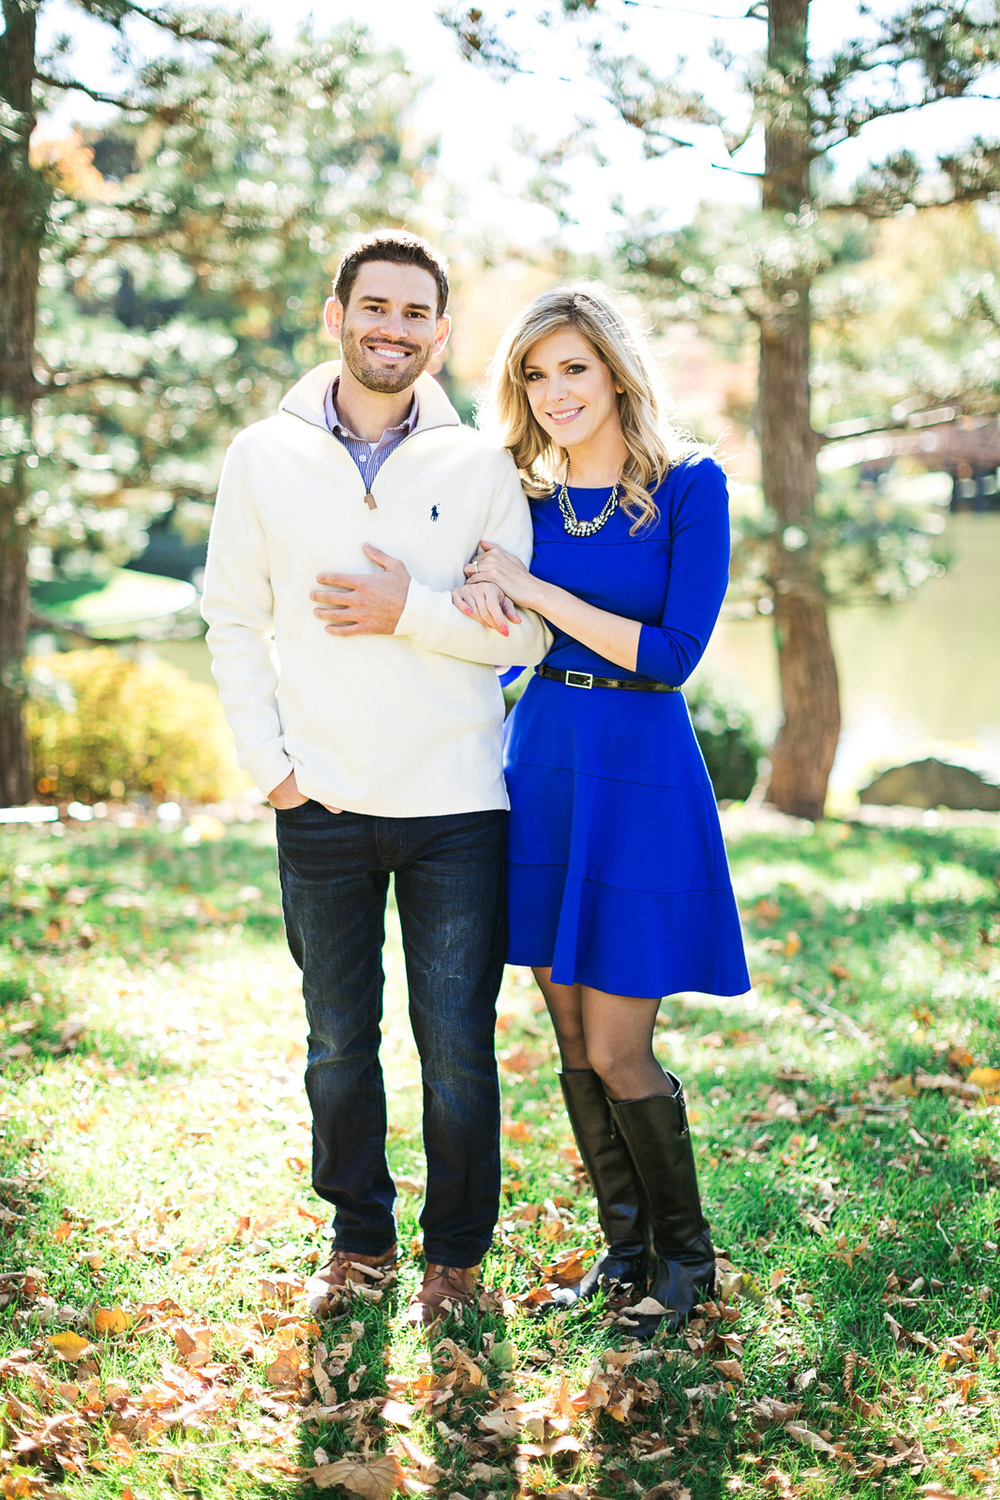 Oldani Photography St Louis Missouri Botanical Garden Engagement_20141101_142313-2.jpg